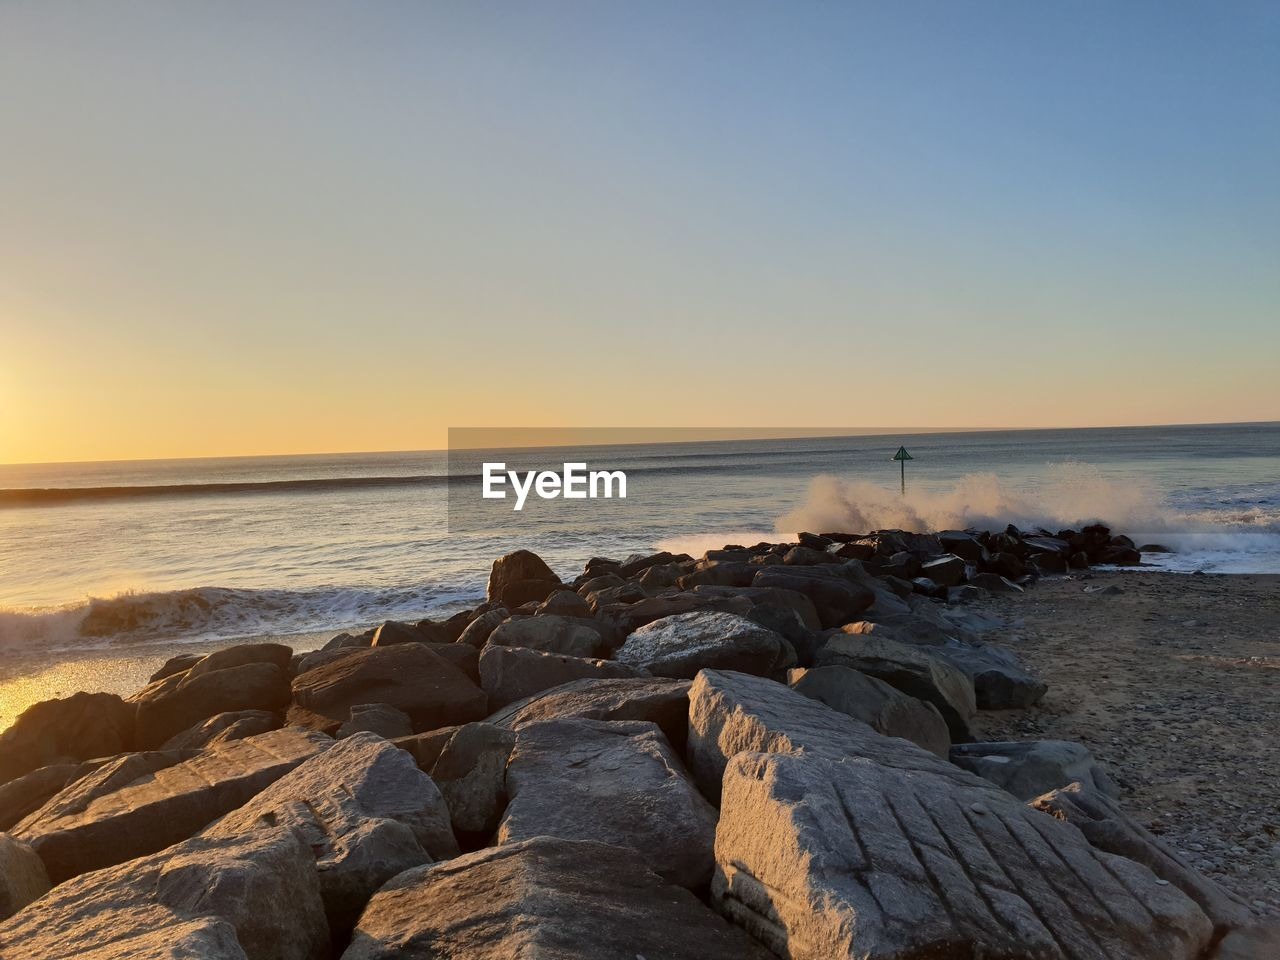 sea, water, sky, beach, land, horizon over water, scenics - nature, horizon, rock, beauty in nature, rock - object, sunset, solid, tranquility, tranquil scene, nature, motion, wave, clear sky, no people, outdoors, rocky coastline